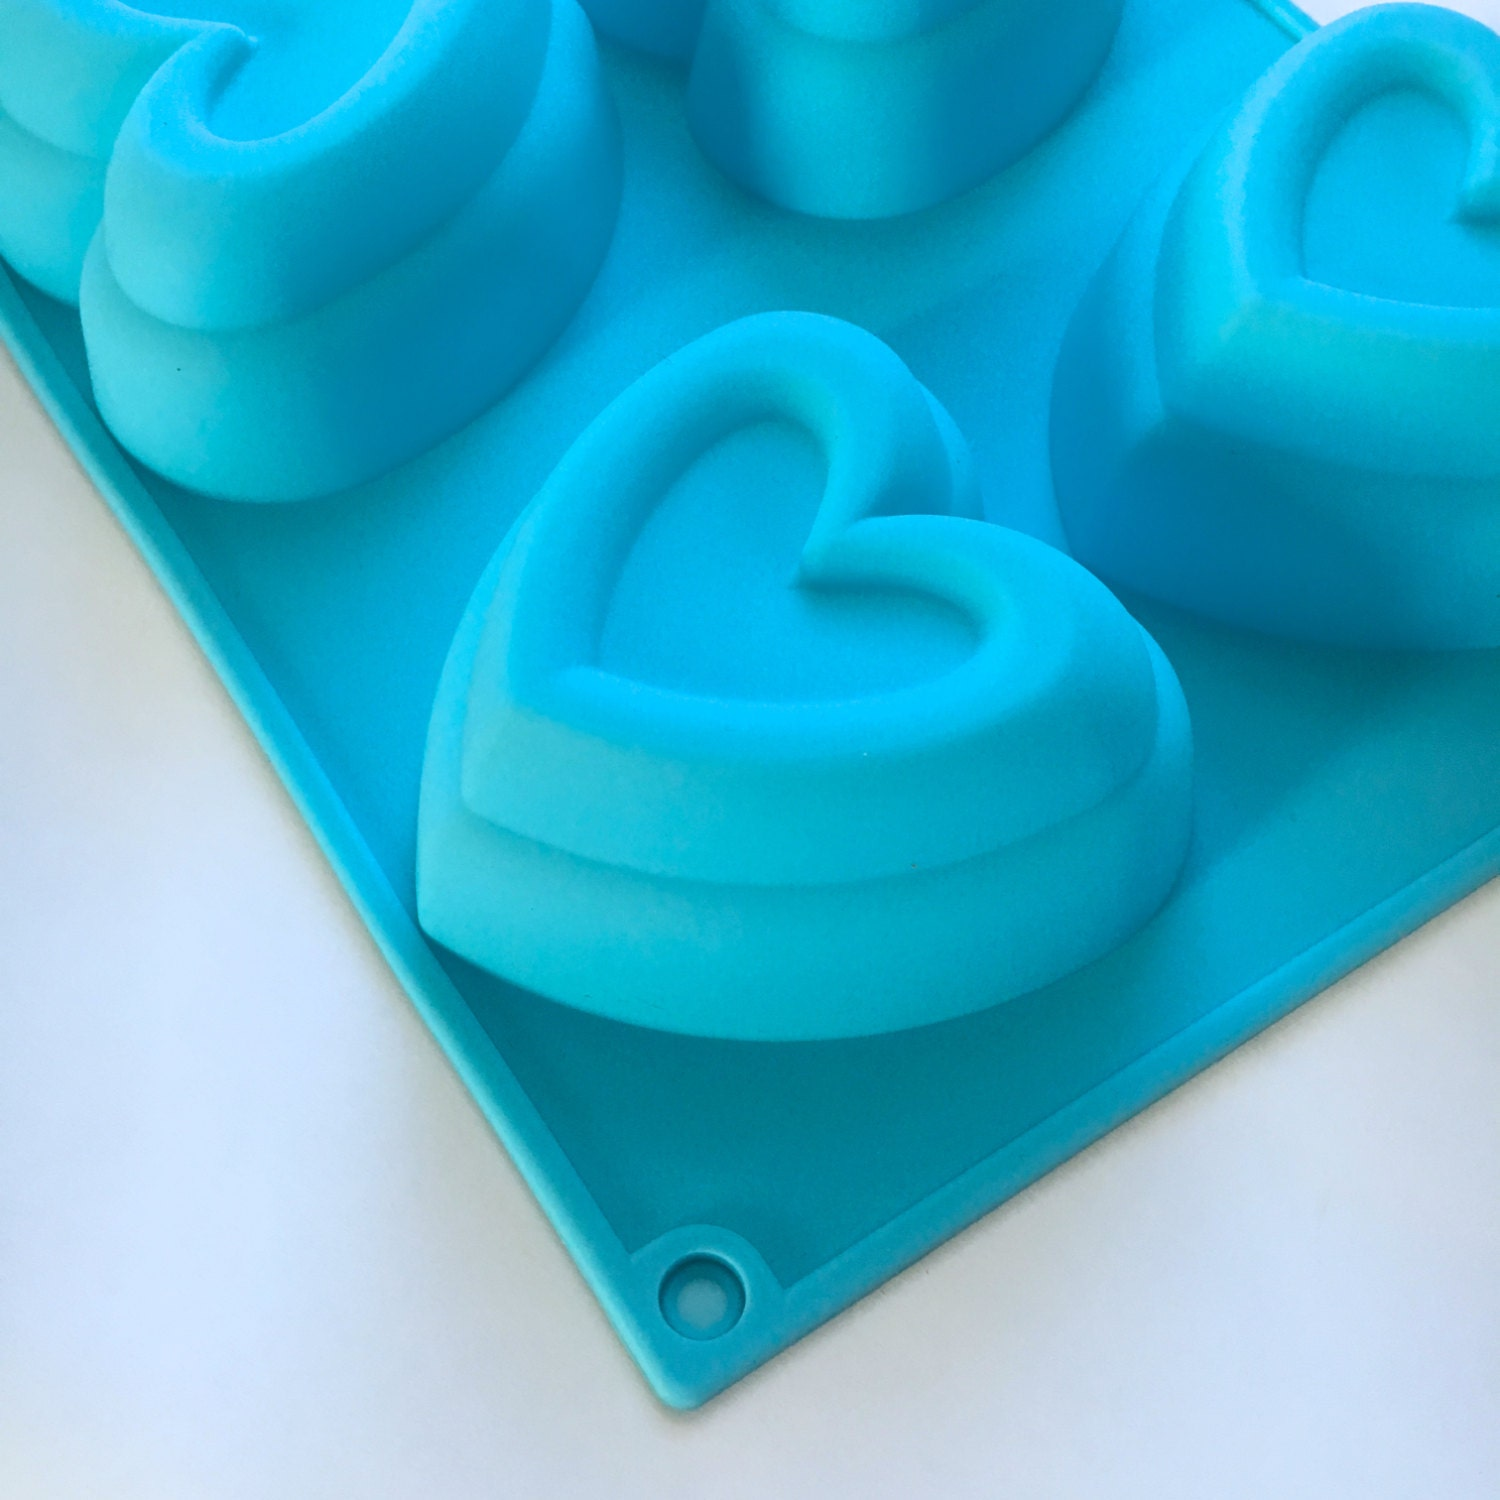 FRAMED HEART Soap Mold, Silicone, 6- 4oz Cavities, Two Wild Hares